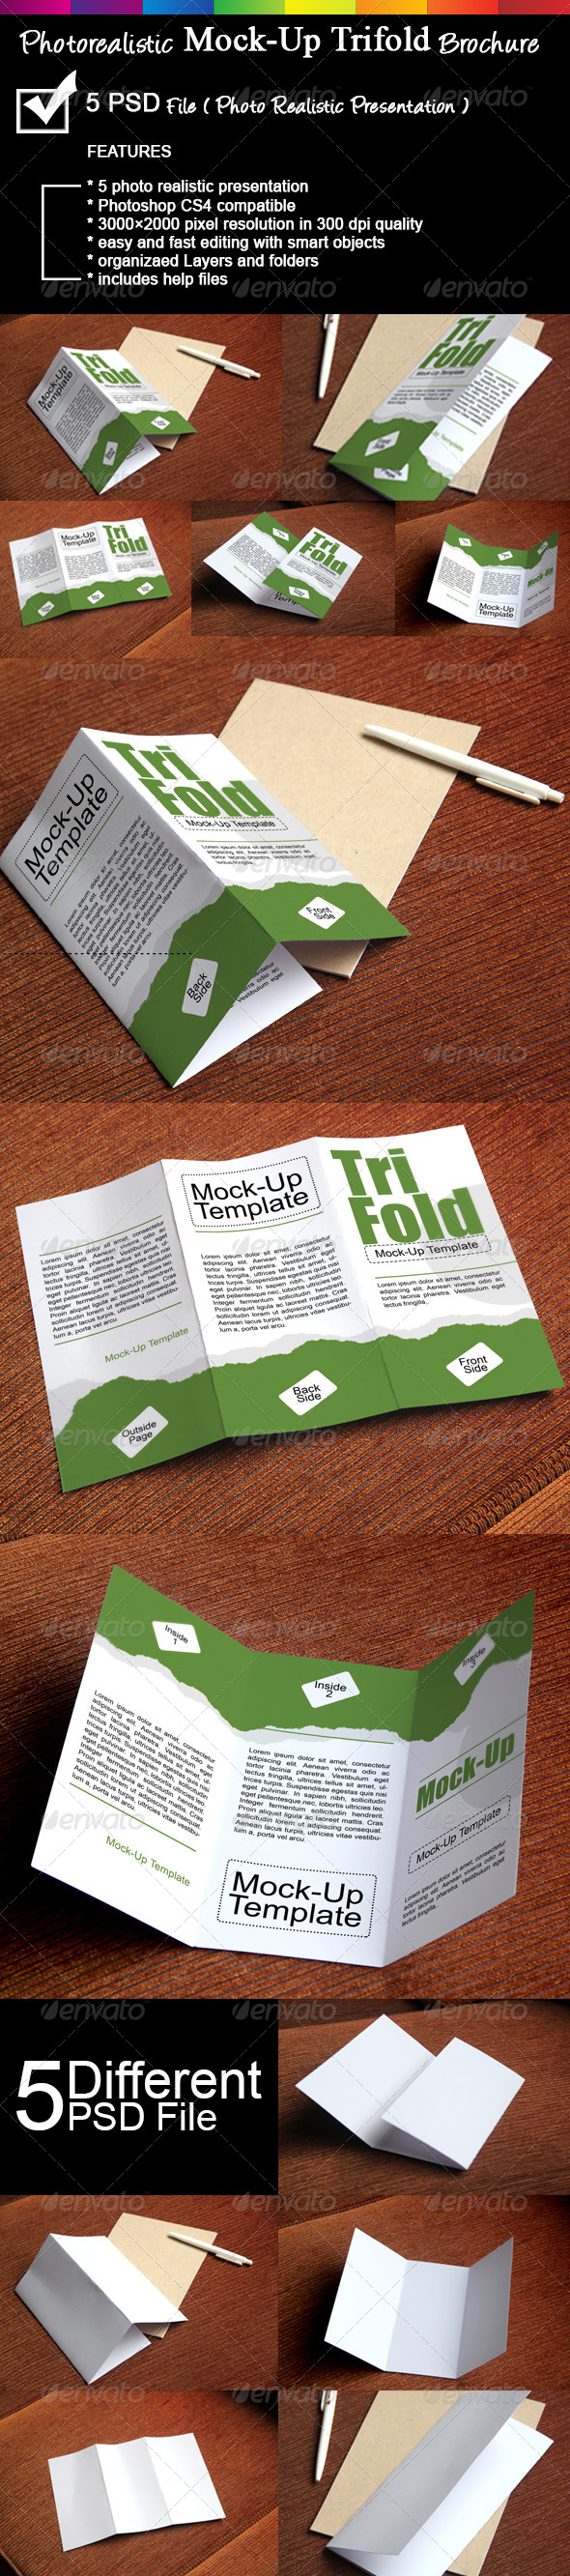 Photorealistic Trifold Brochure Mock-Up - Brochures Print